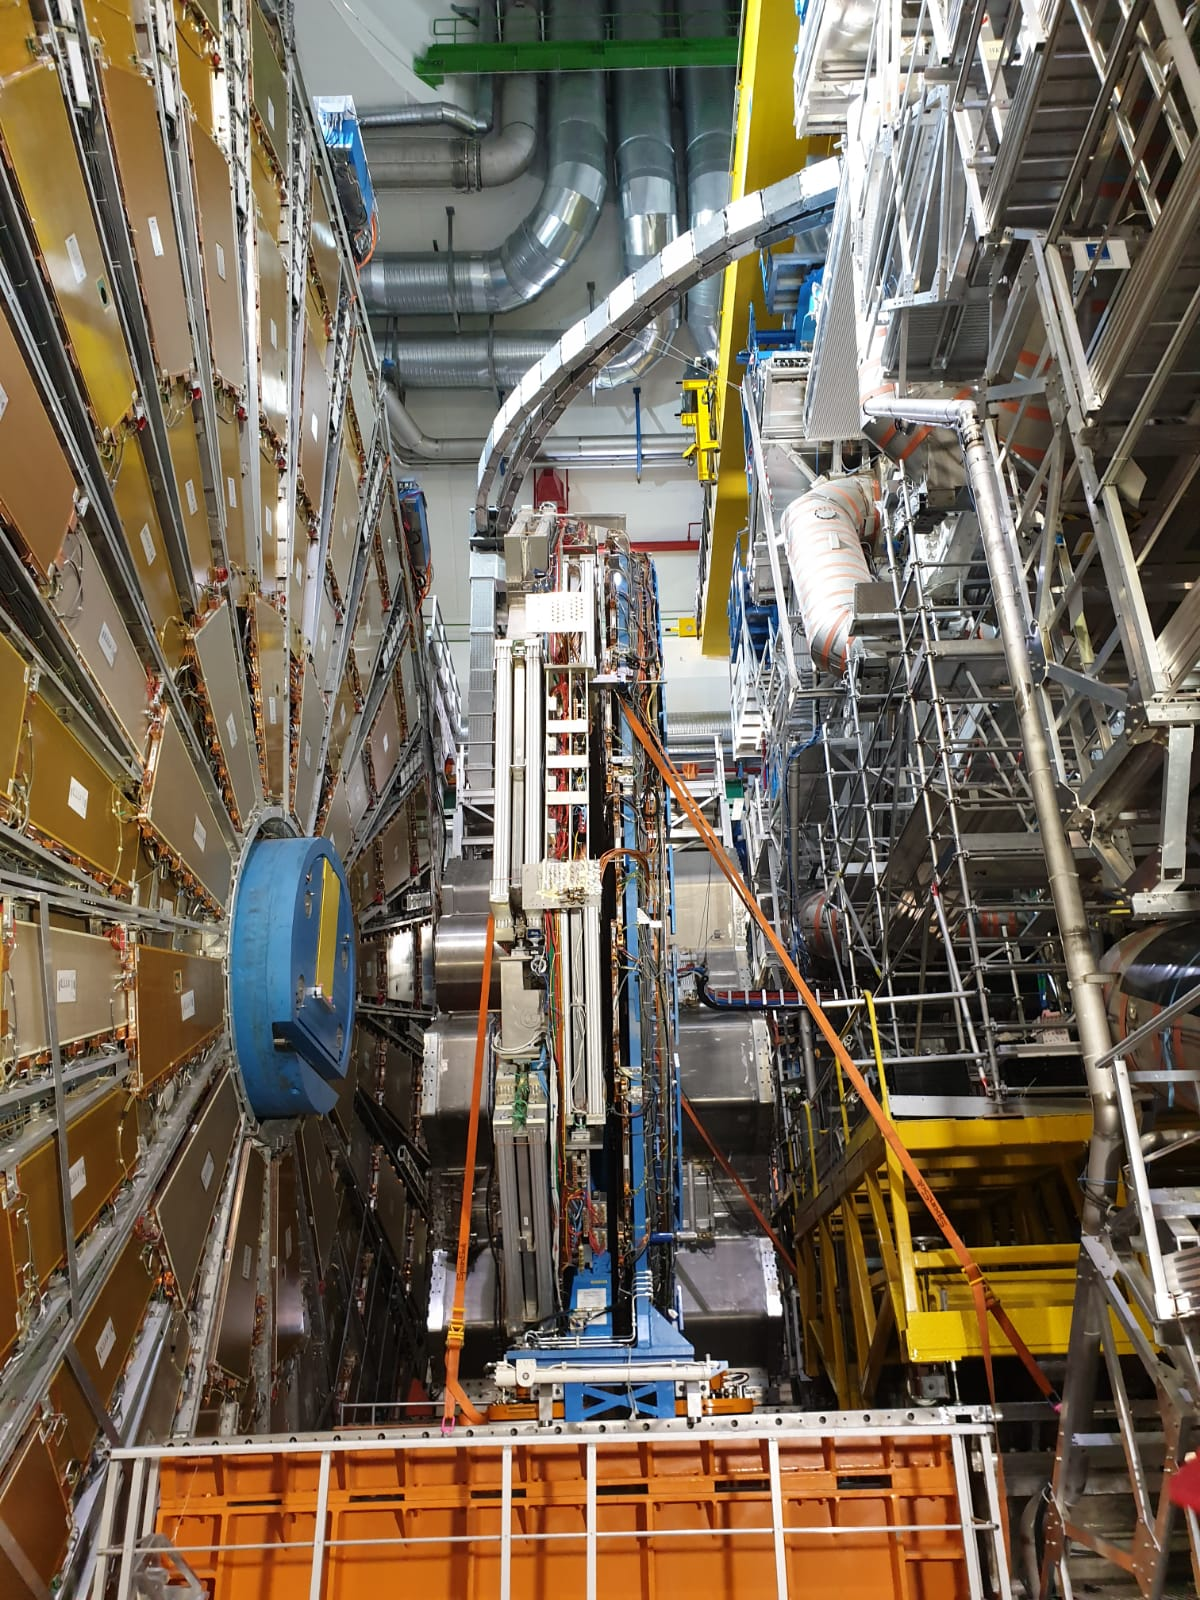 LHC Atlas Experiment 20190821